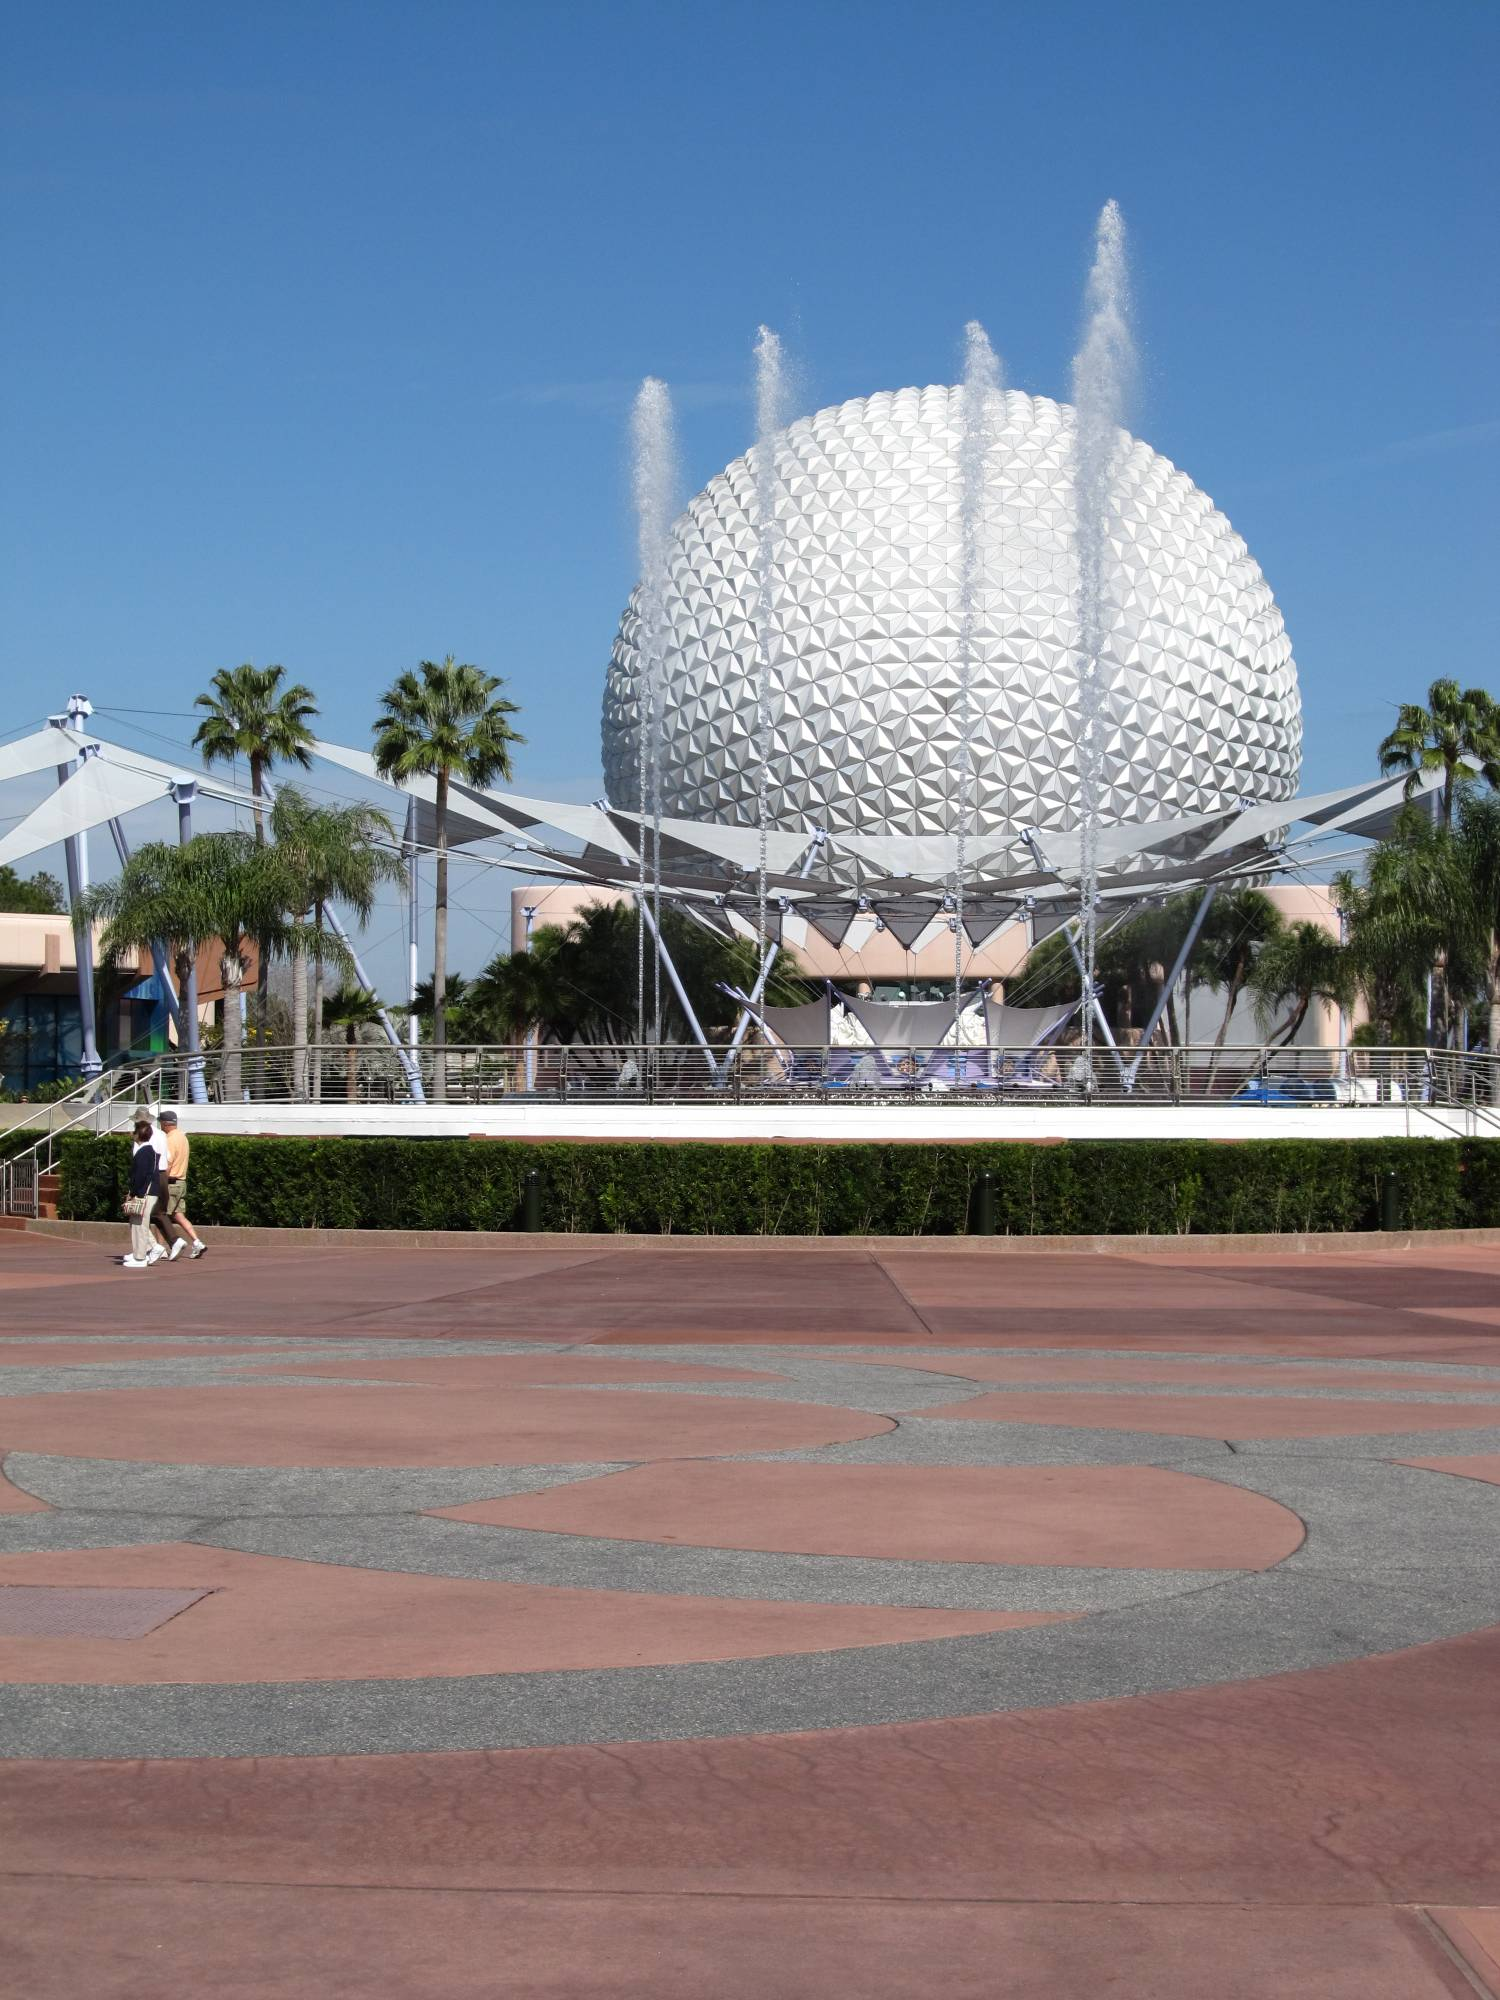 Spaceship Earth Fountains